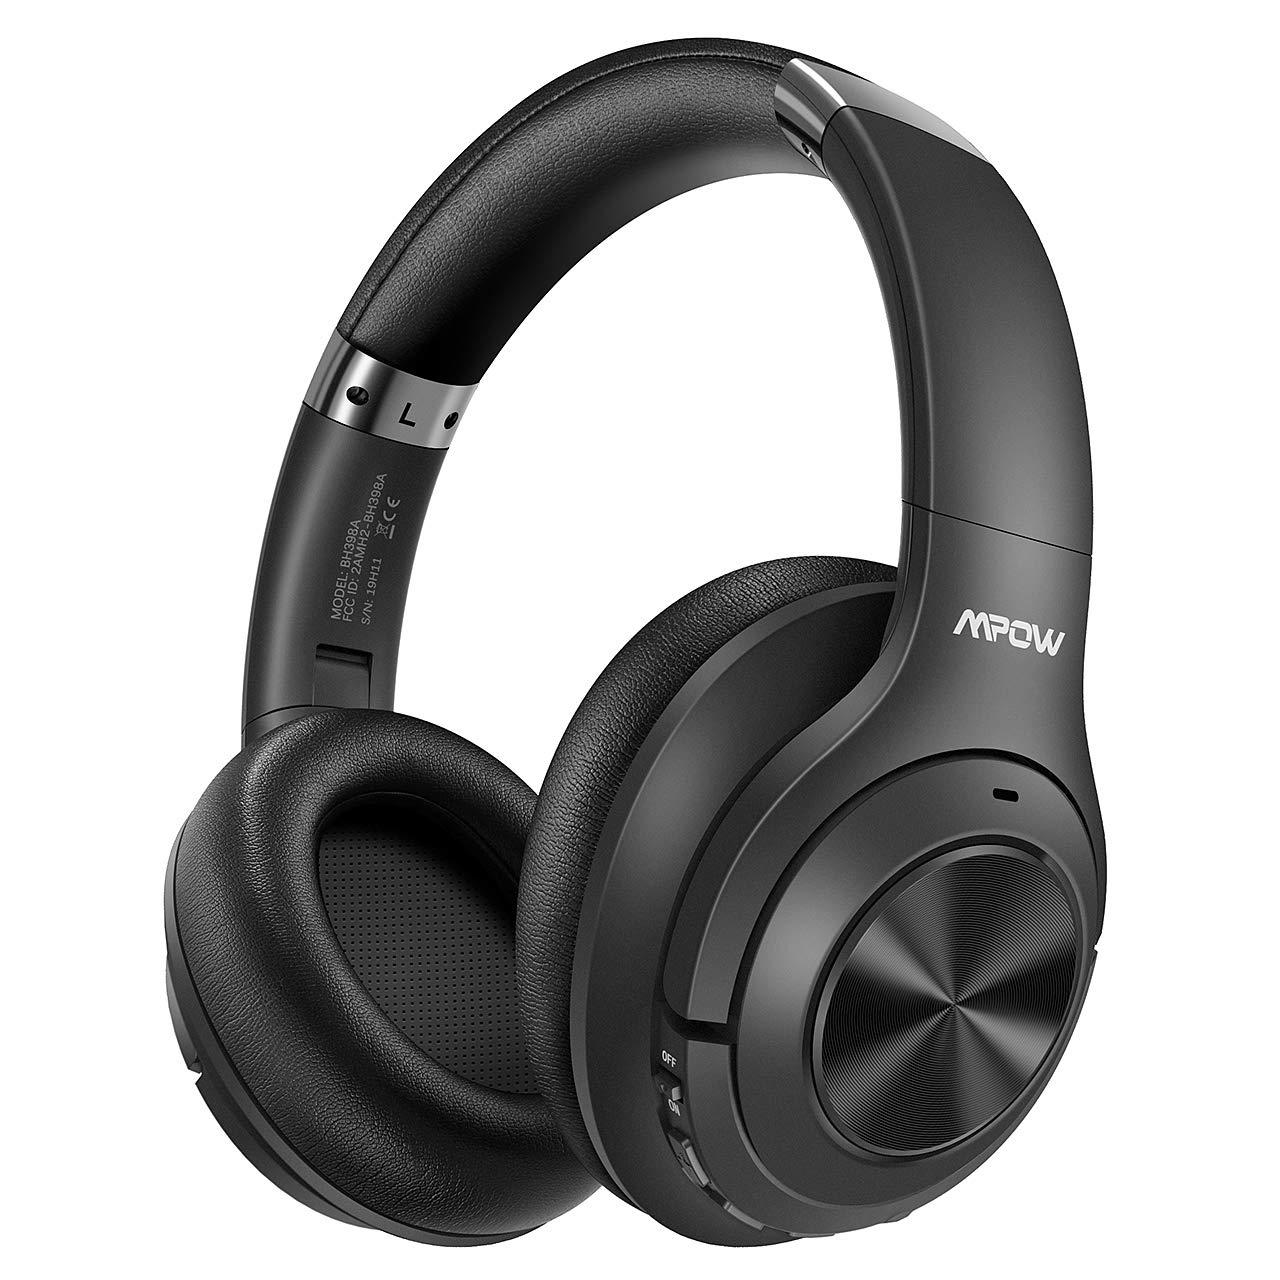 Mpow H21 Hybrid Active Noise Cancelling Headphones, Bluetooth 5.0 Over-Ear Headphones, 40H Playtime Wireless Headphones, Soft Protein Earpads with CVC 6.0 Dual-Mic Noise-Reduction, for Travel TV Work